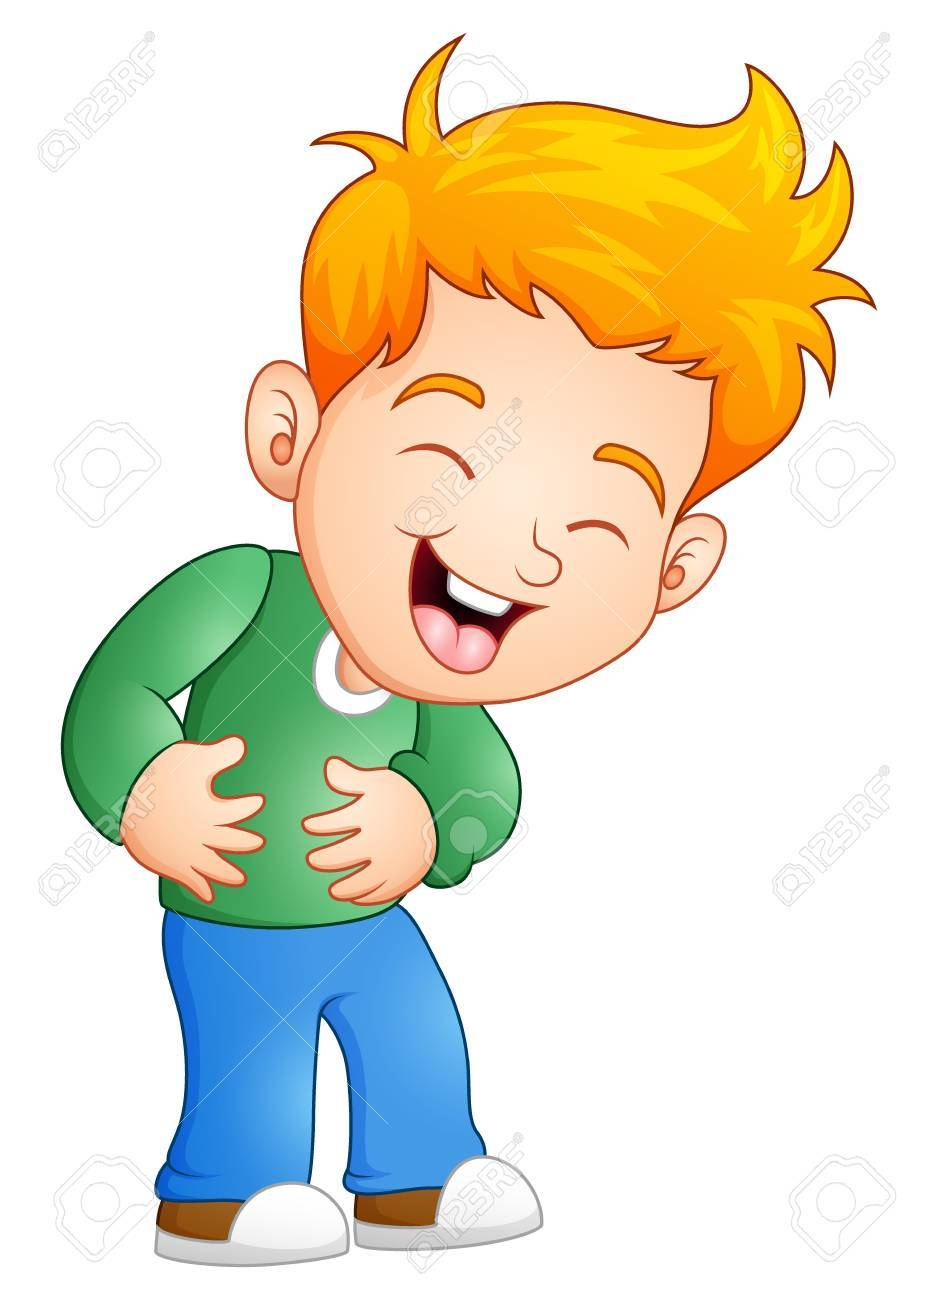 Kid laughing clipart 6 » Clipart Portal.